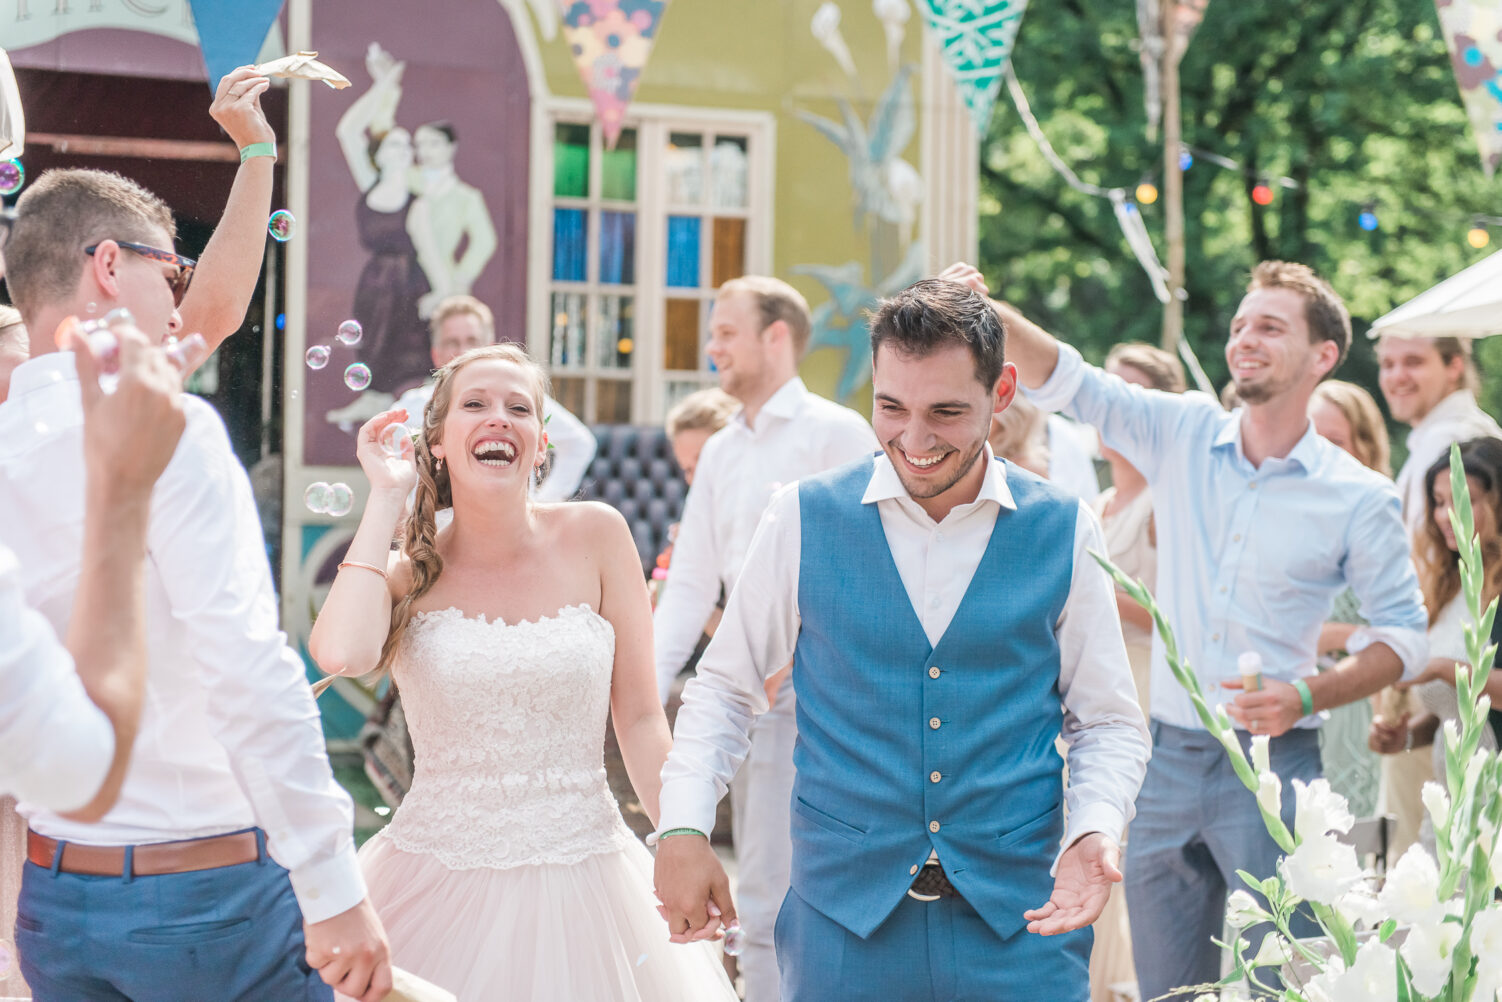 Confetti shot of the bride and groom coming out of their wedding ceremony